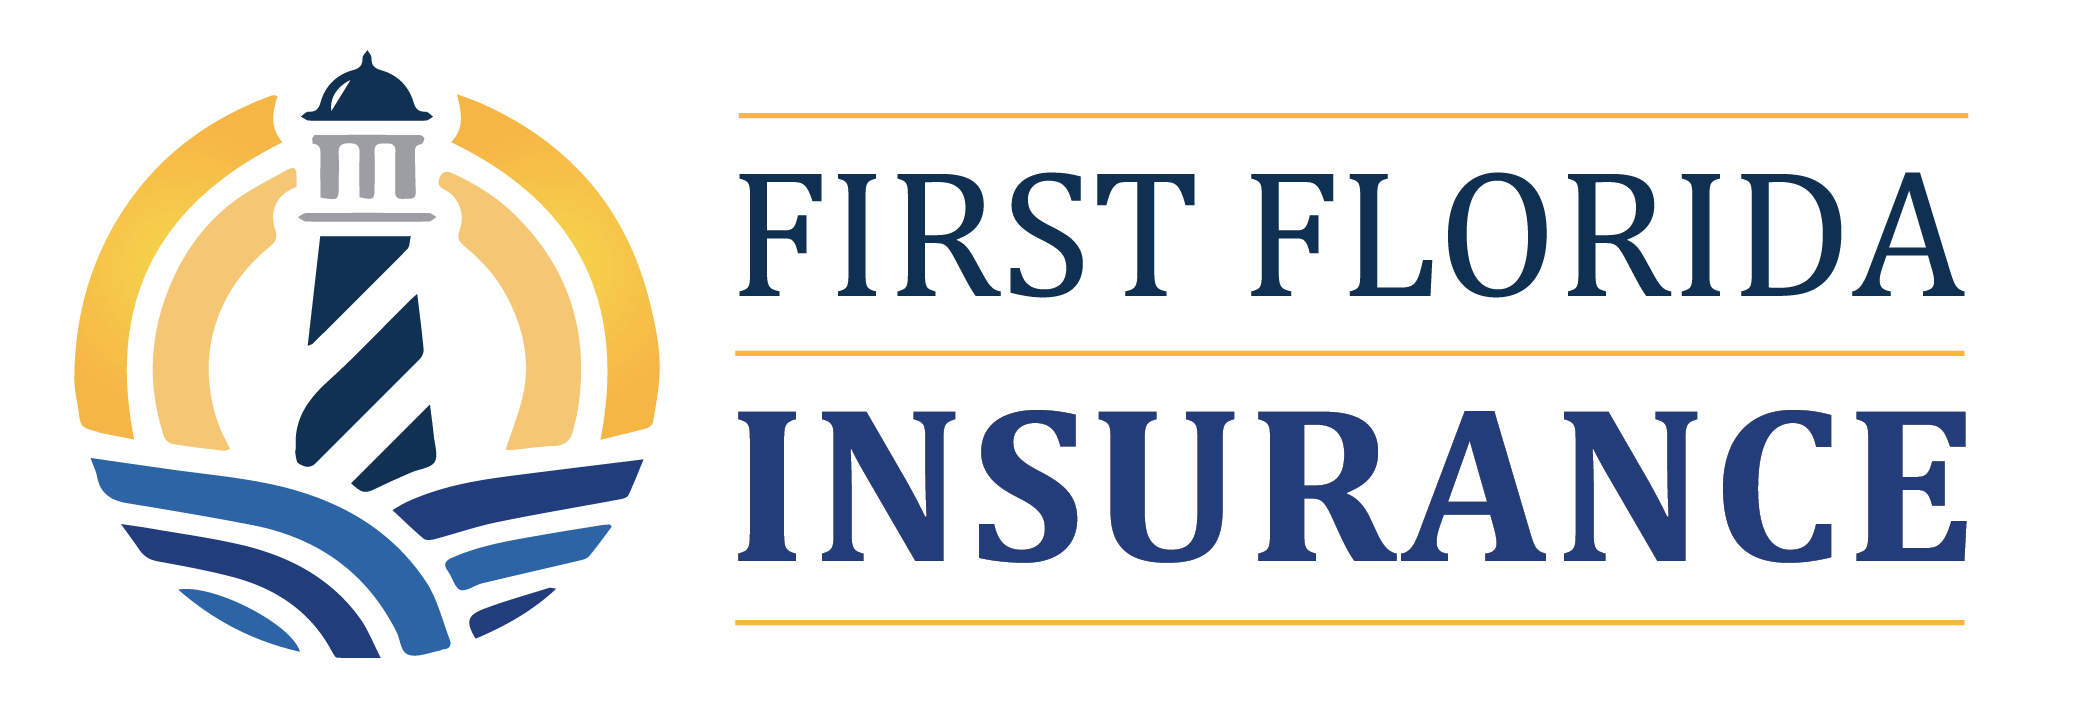 Homeowners Insurance In Florida Take The First Florida Insurance Quote Challenge